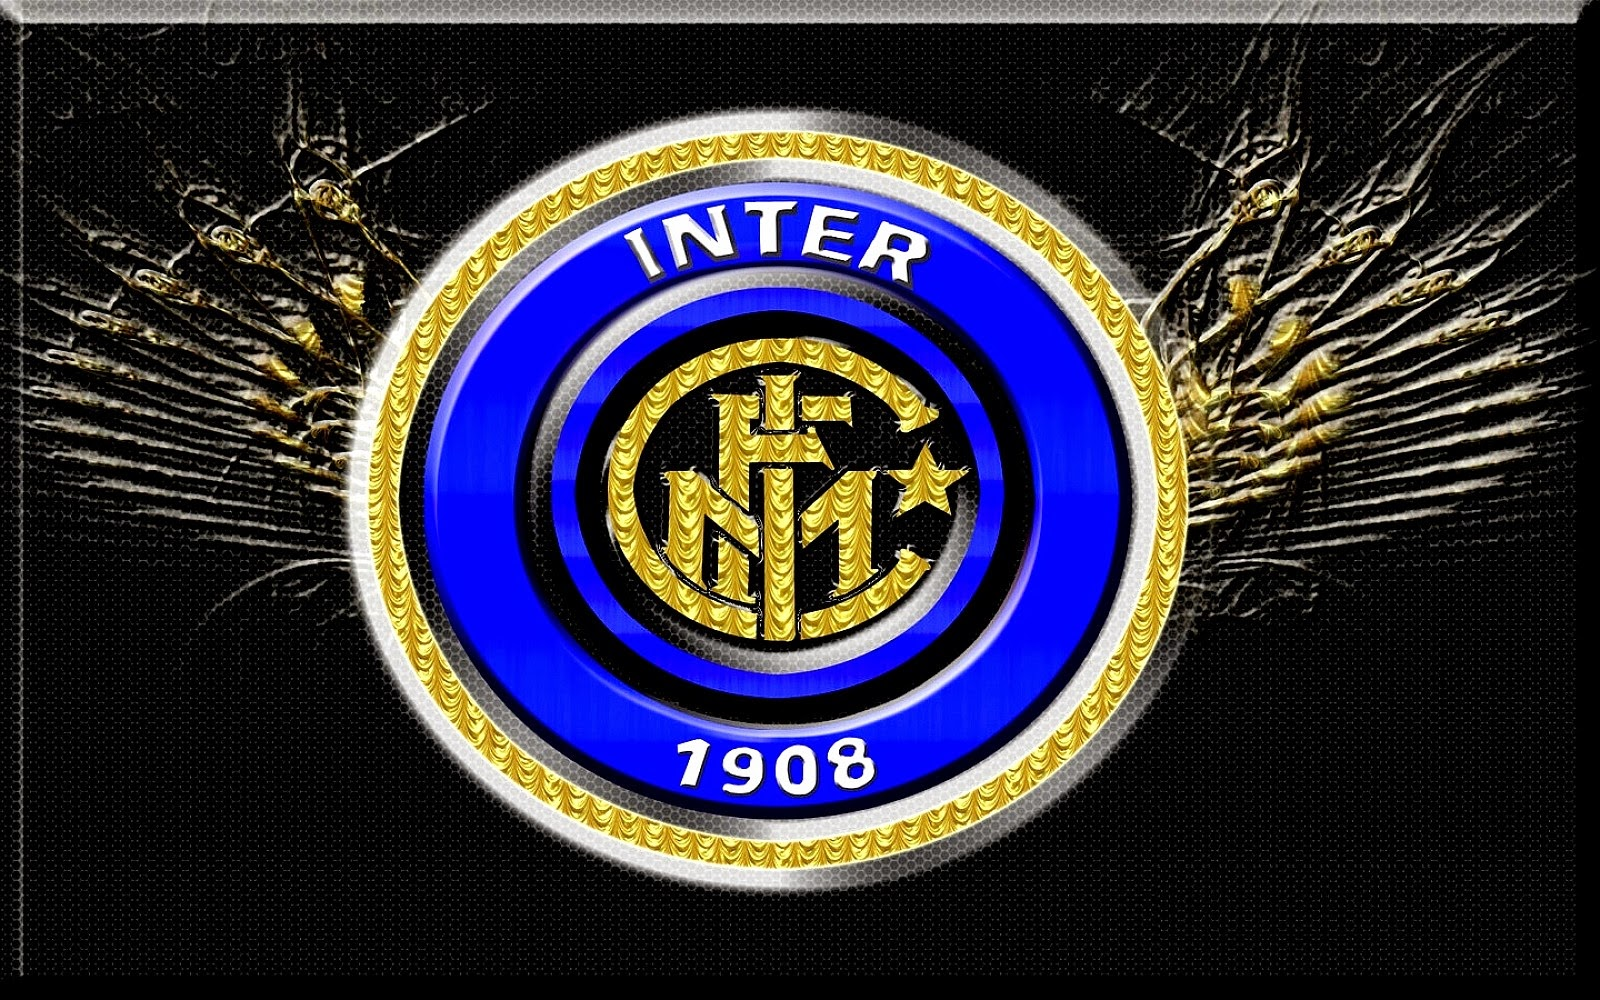 Hd wallpaper arema - Logo Intermilan Gambar Logo